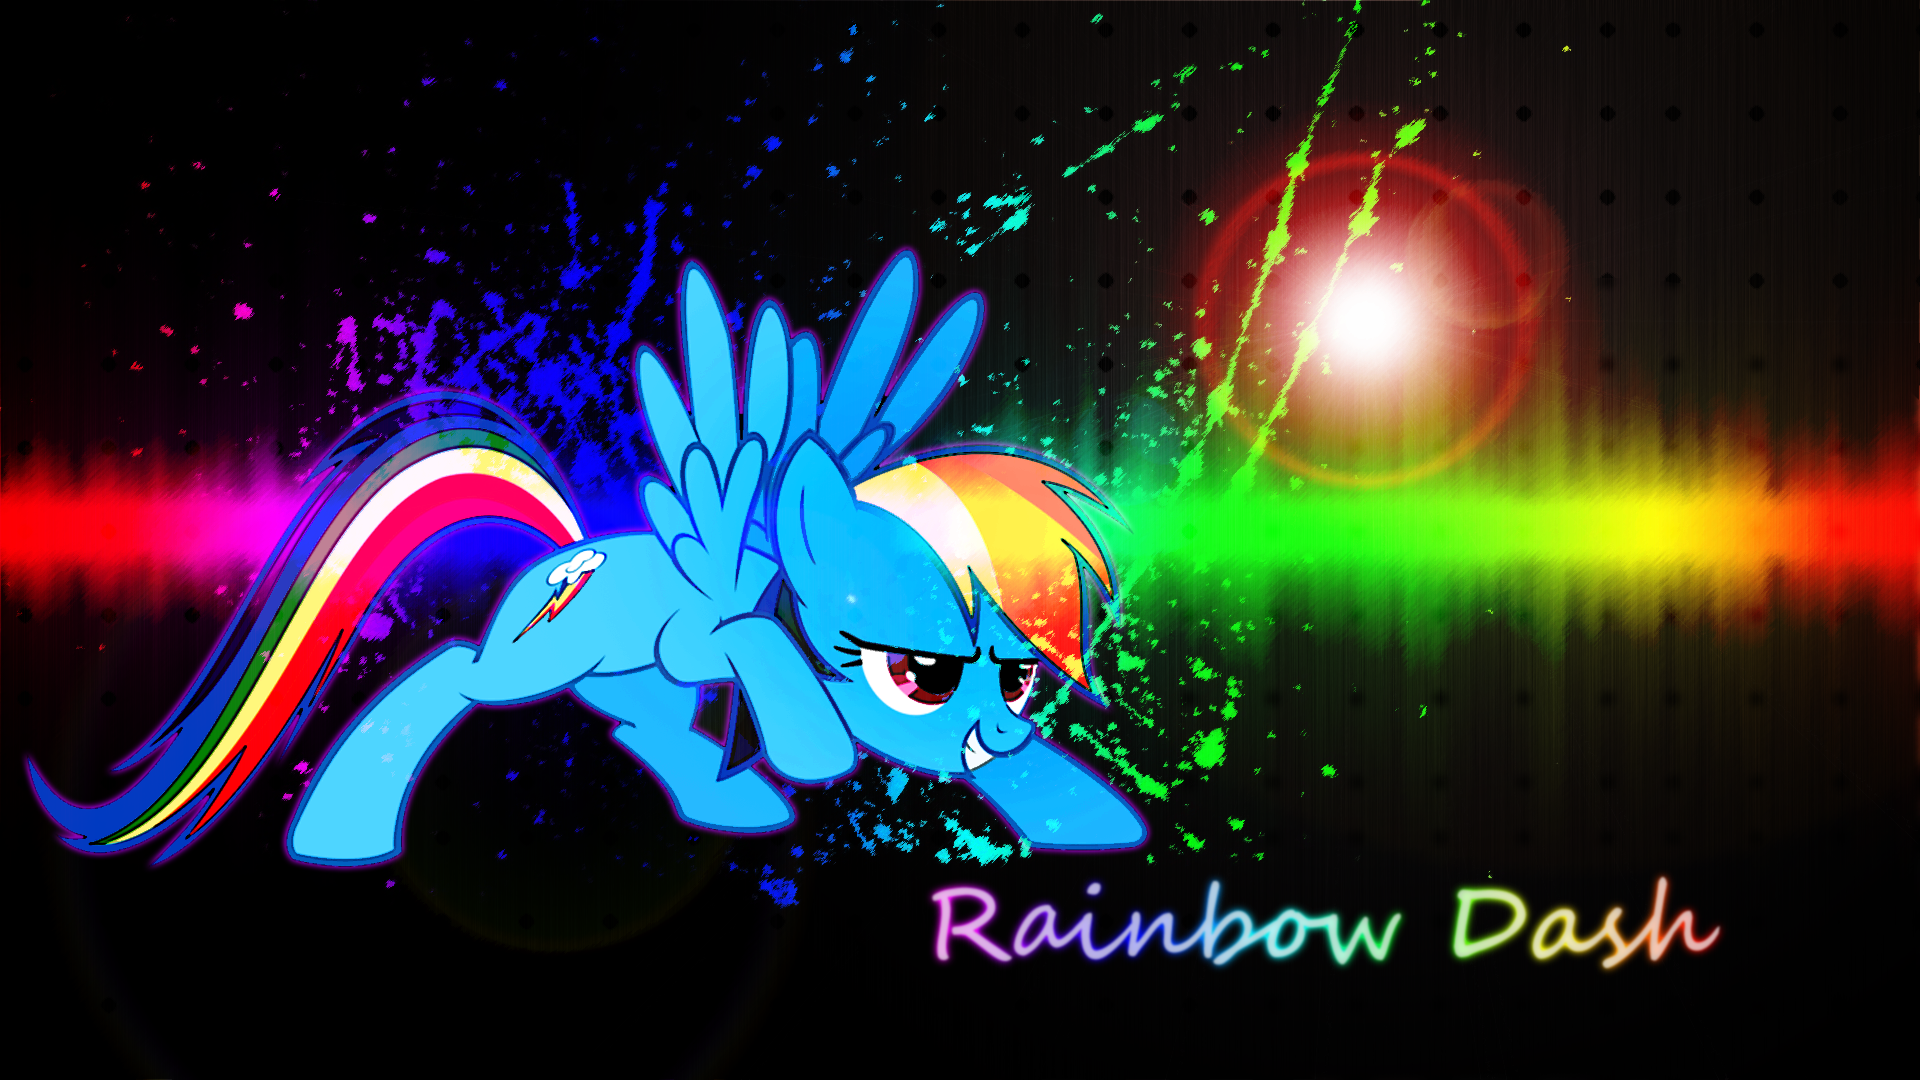 Rainbow Dash Wallpaper http://rainbowdash.net/attachment/179706